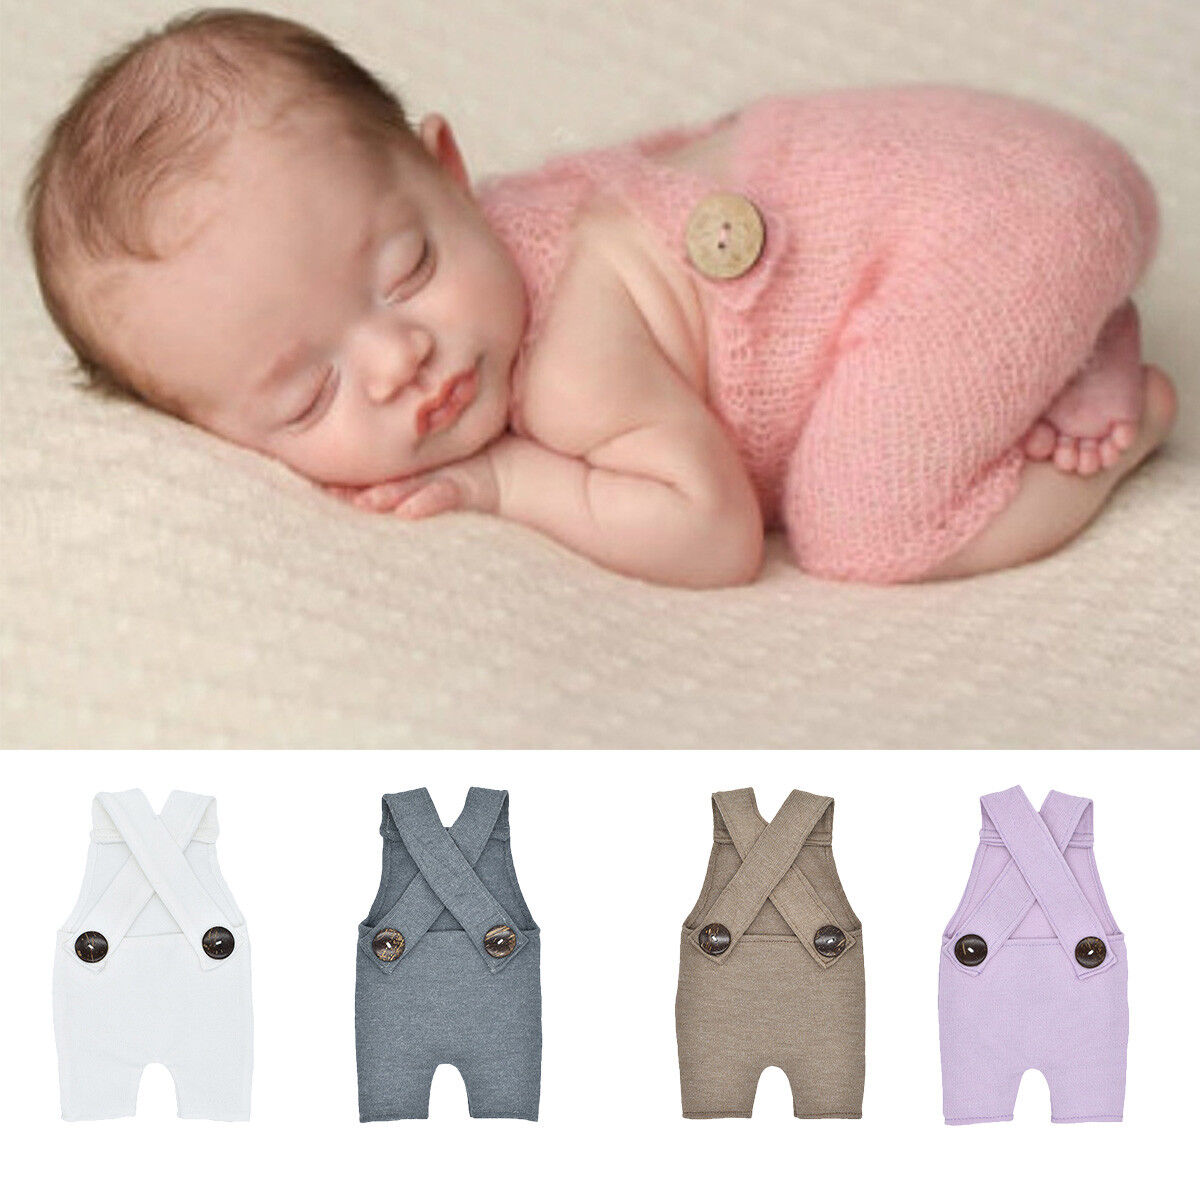 Photography Prop Button Overalls Pants Baby Photo-Shoot Romper Outfit Newborn